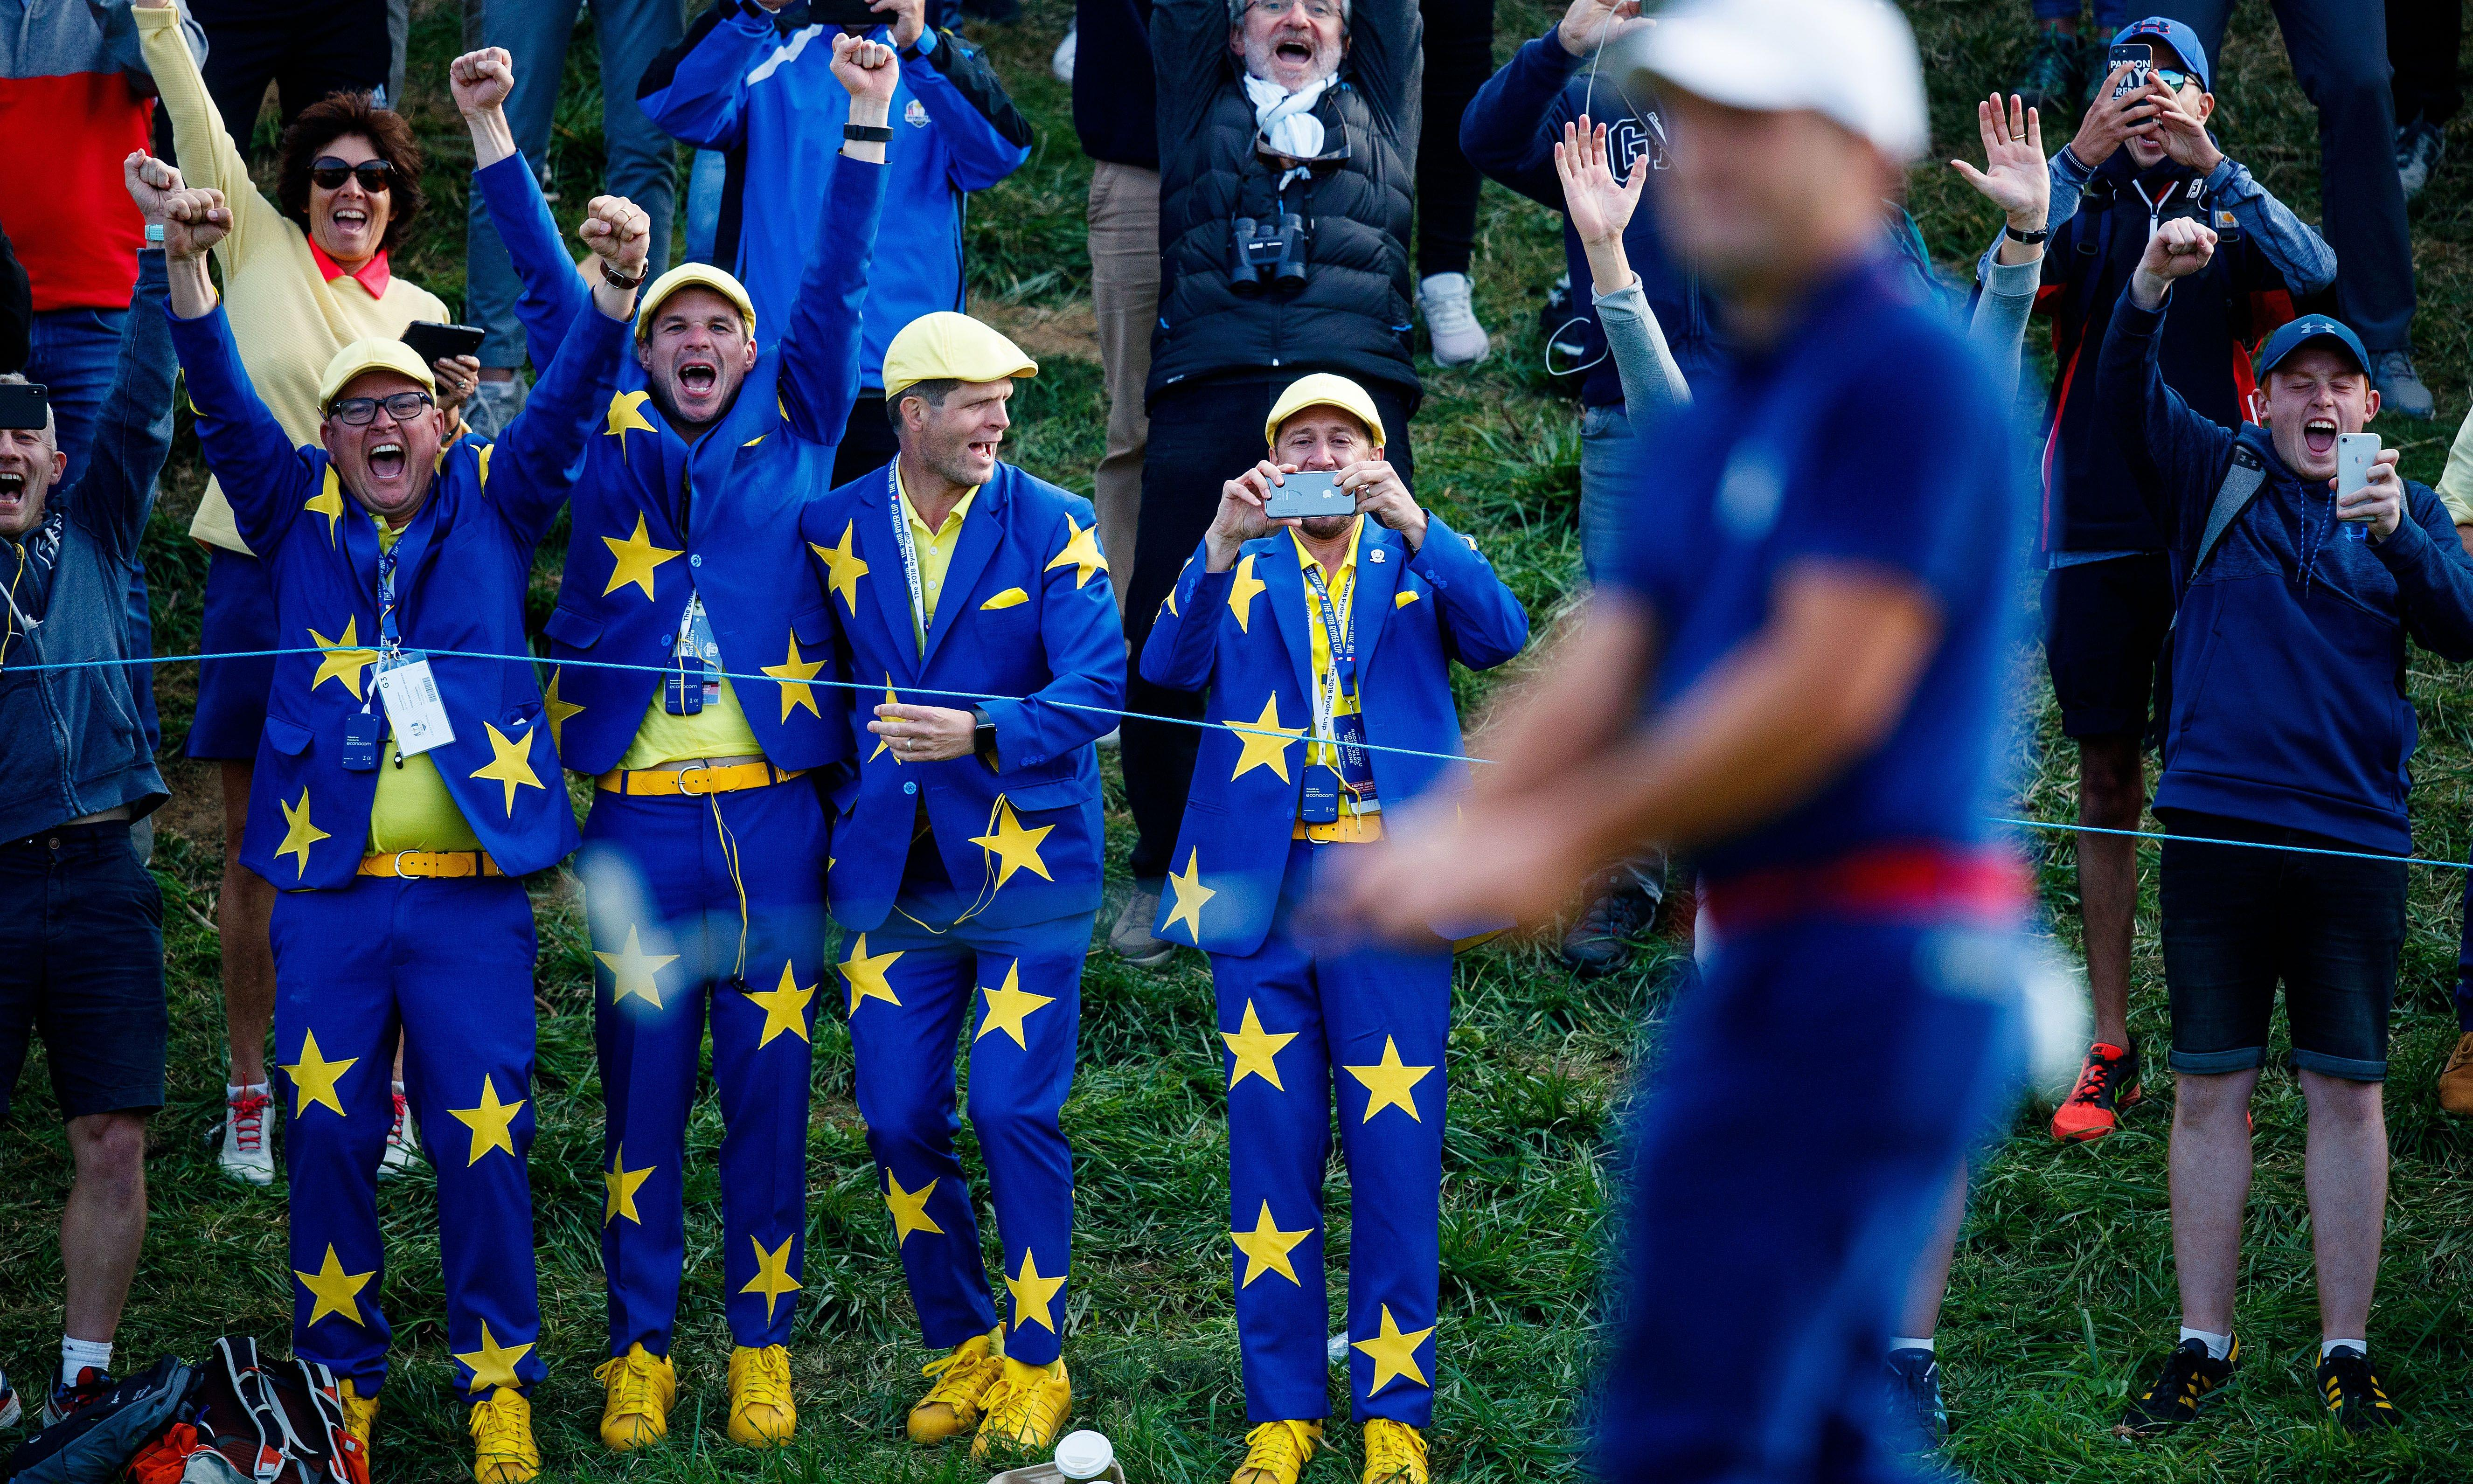 For one big golfing weekend, Britain is at the heart of Europe